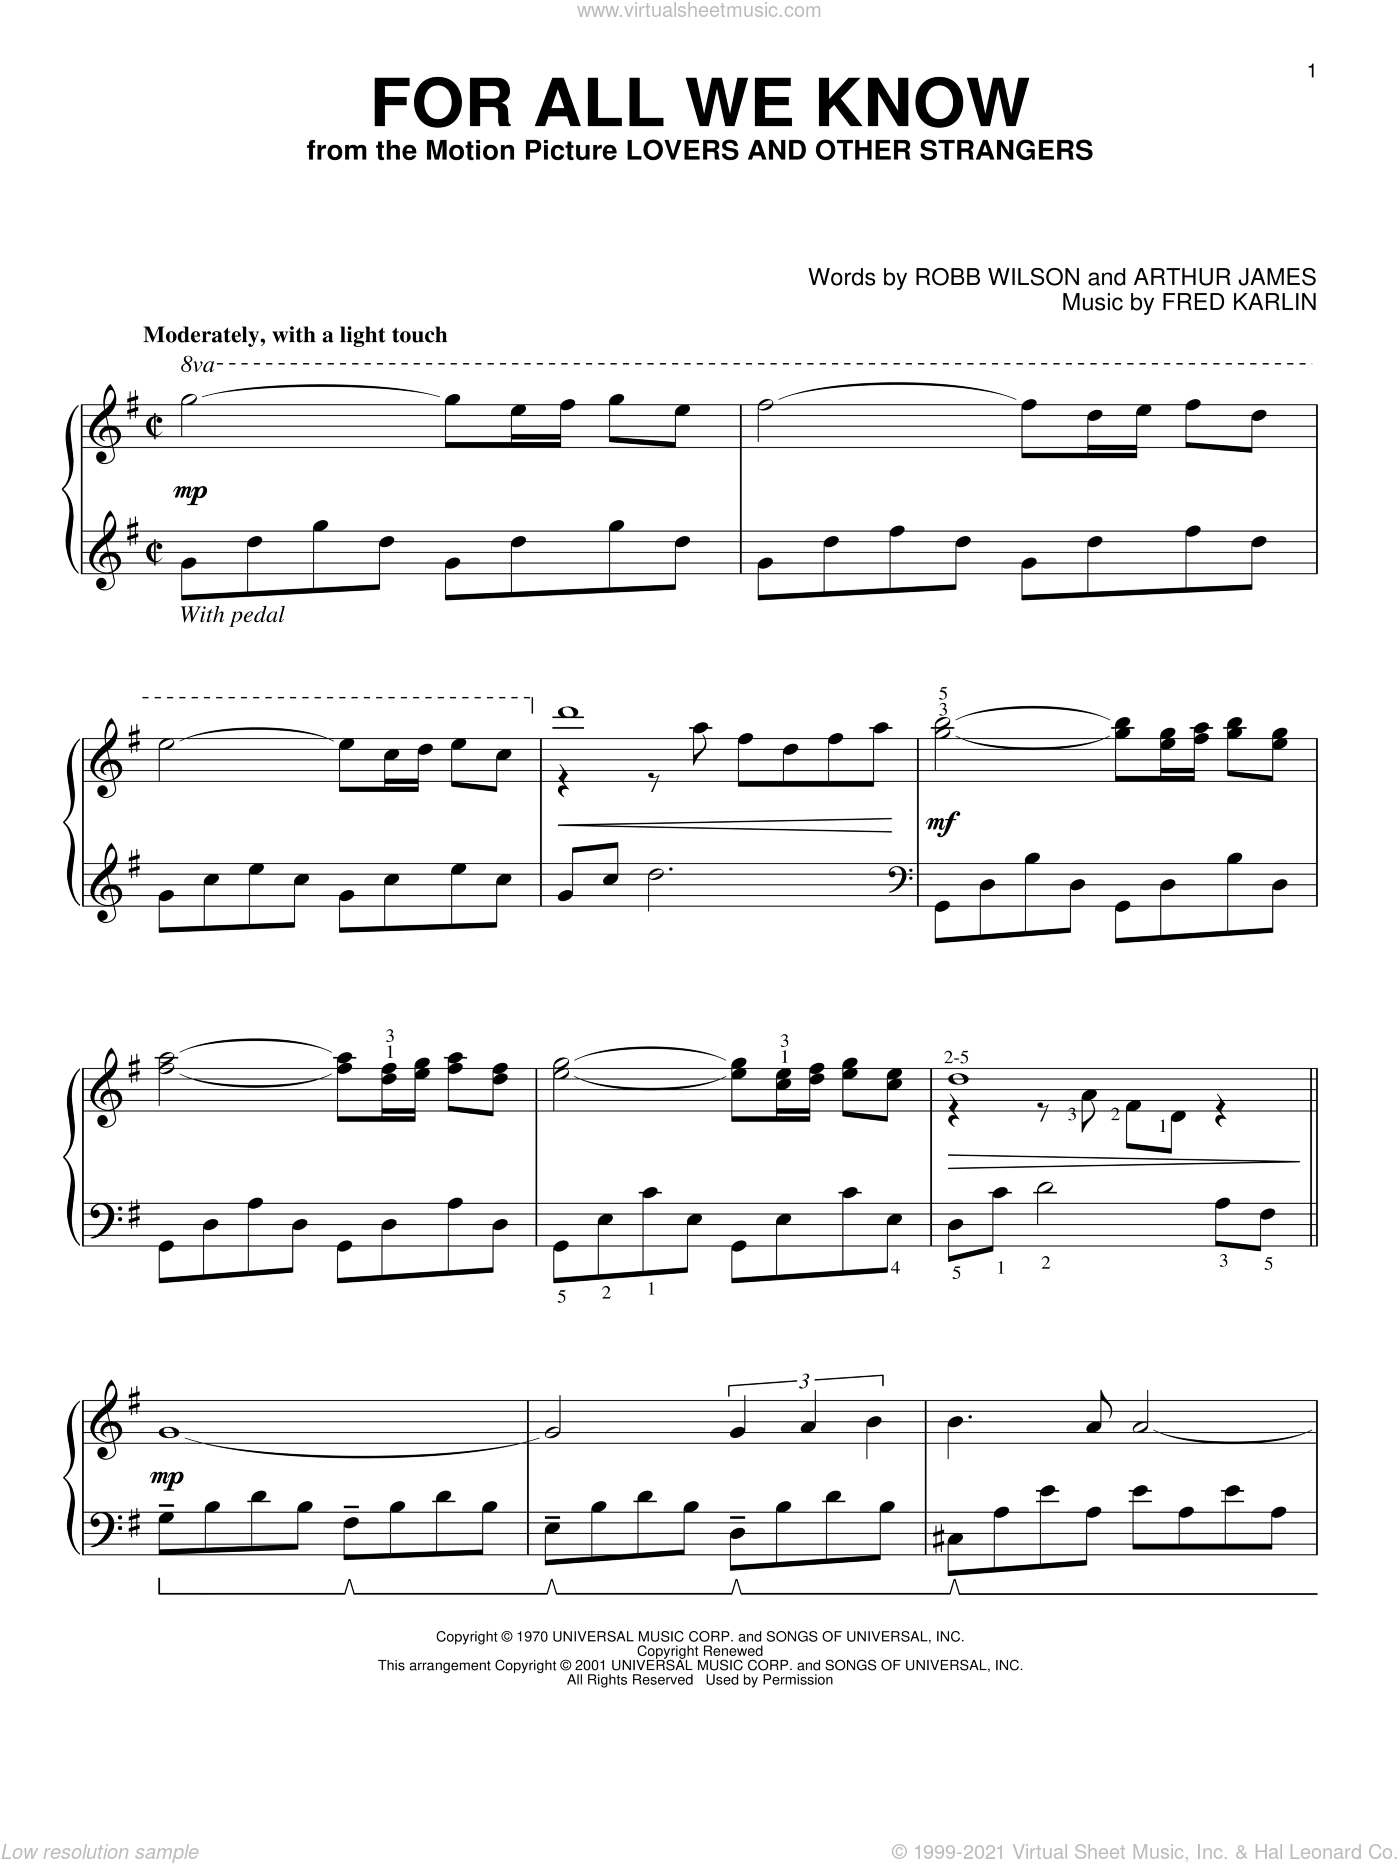 For All We Know, (intermediate) sheet music for piano solo by Carpenters, Fred Karlin, James Griffin and Robb Wilson, wedding score, intermediate skill level